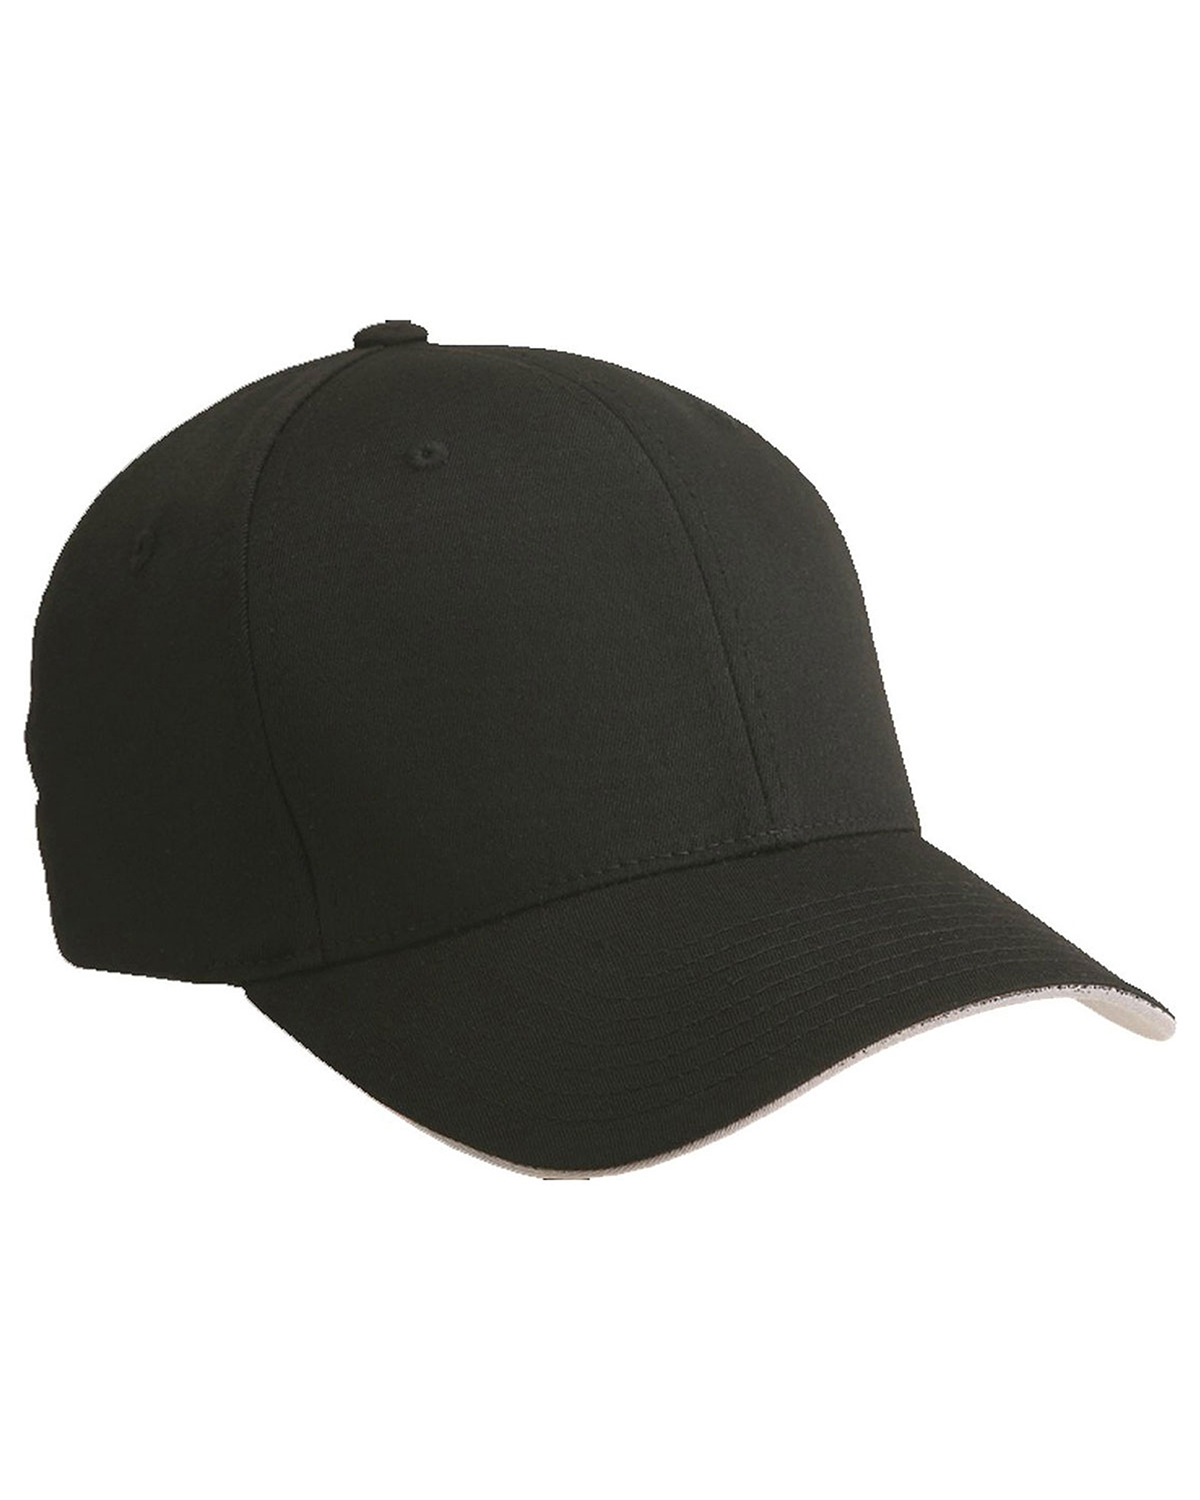 Yupoong 6077 Unisex Cool & Dry Sandwich Cap Black/Silver at GotApparel